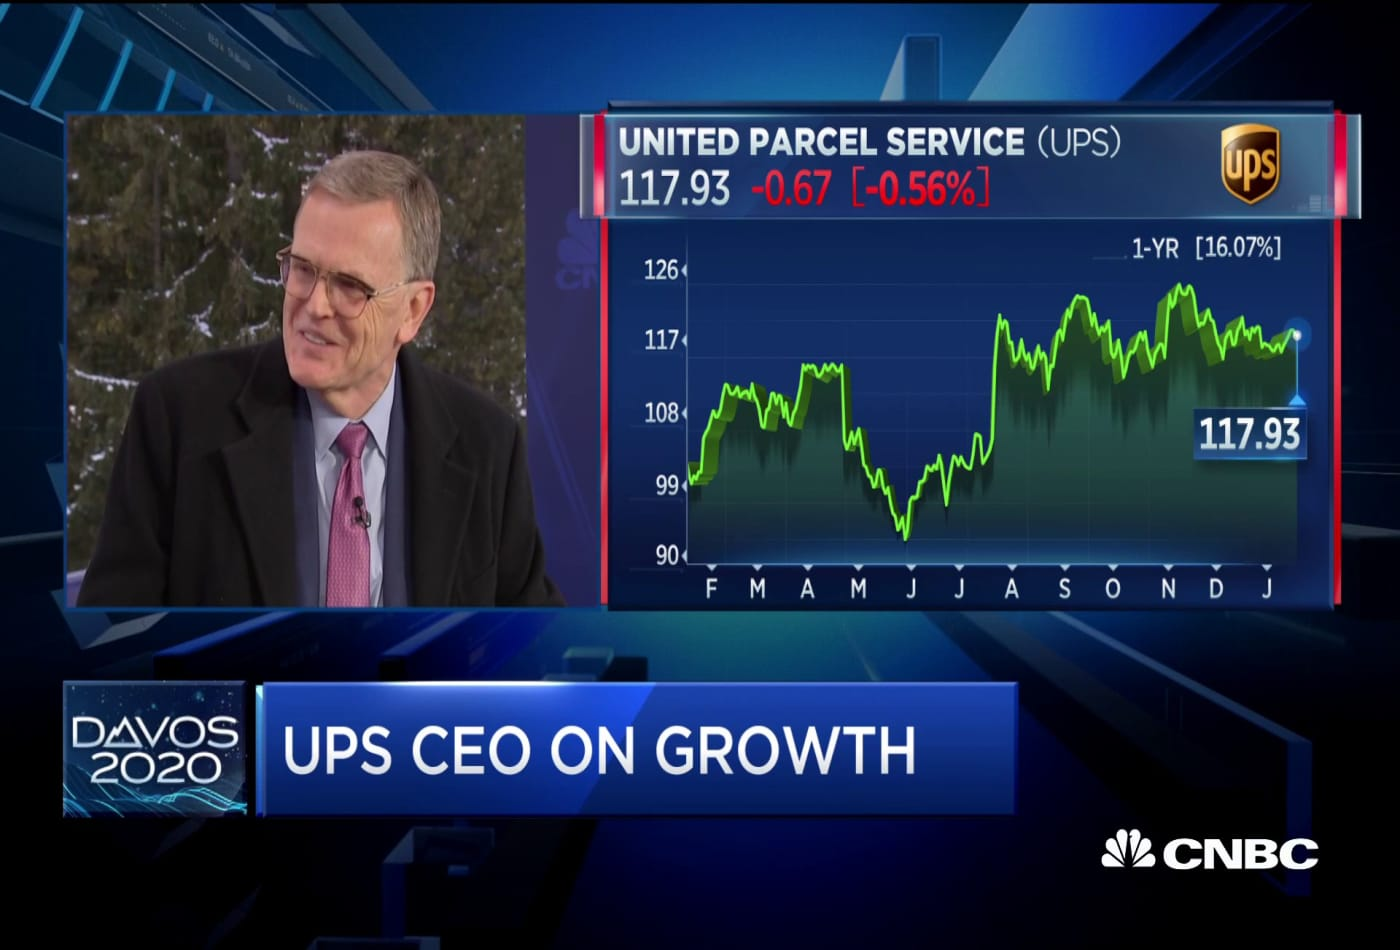 UPS CEO: E-commerce over the holidays picked up faster than we thought